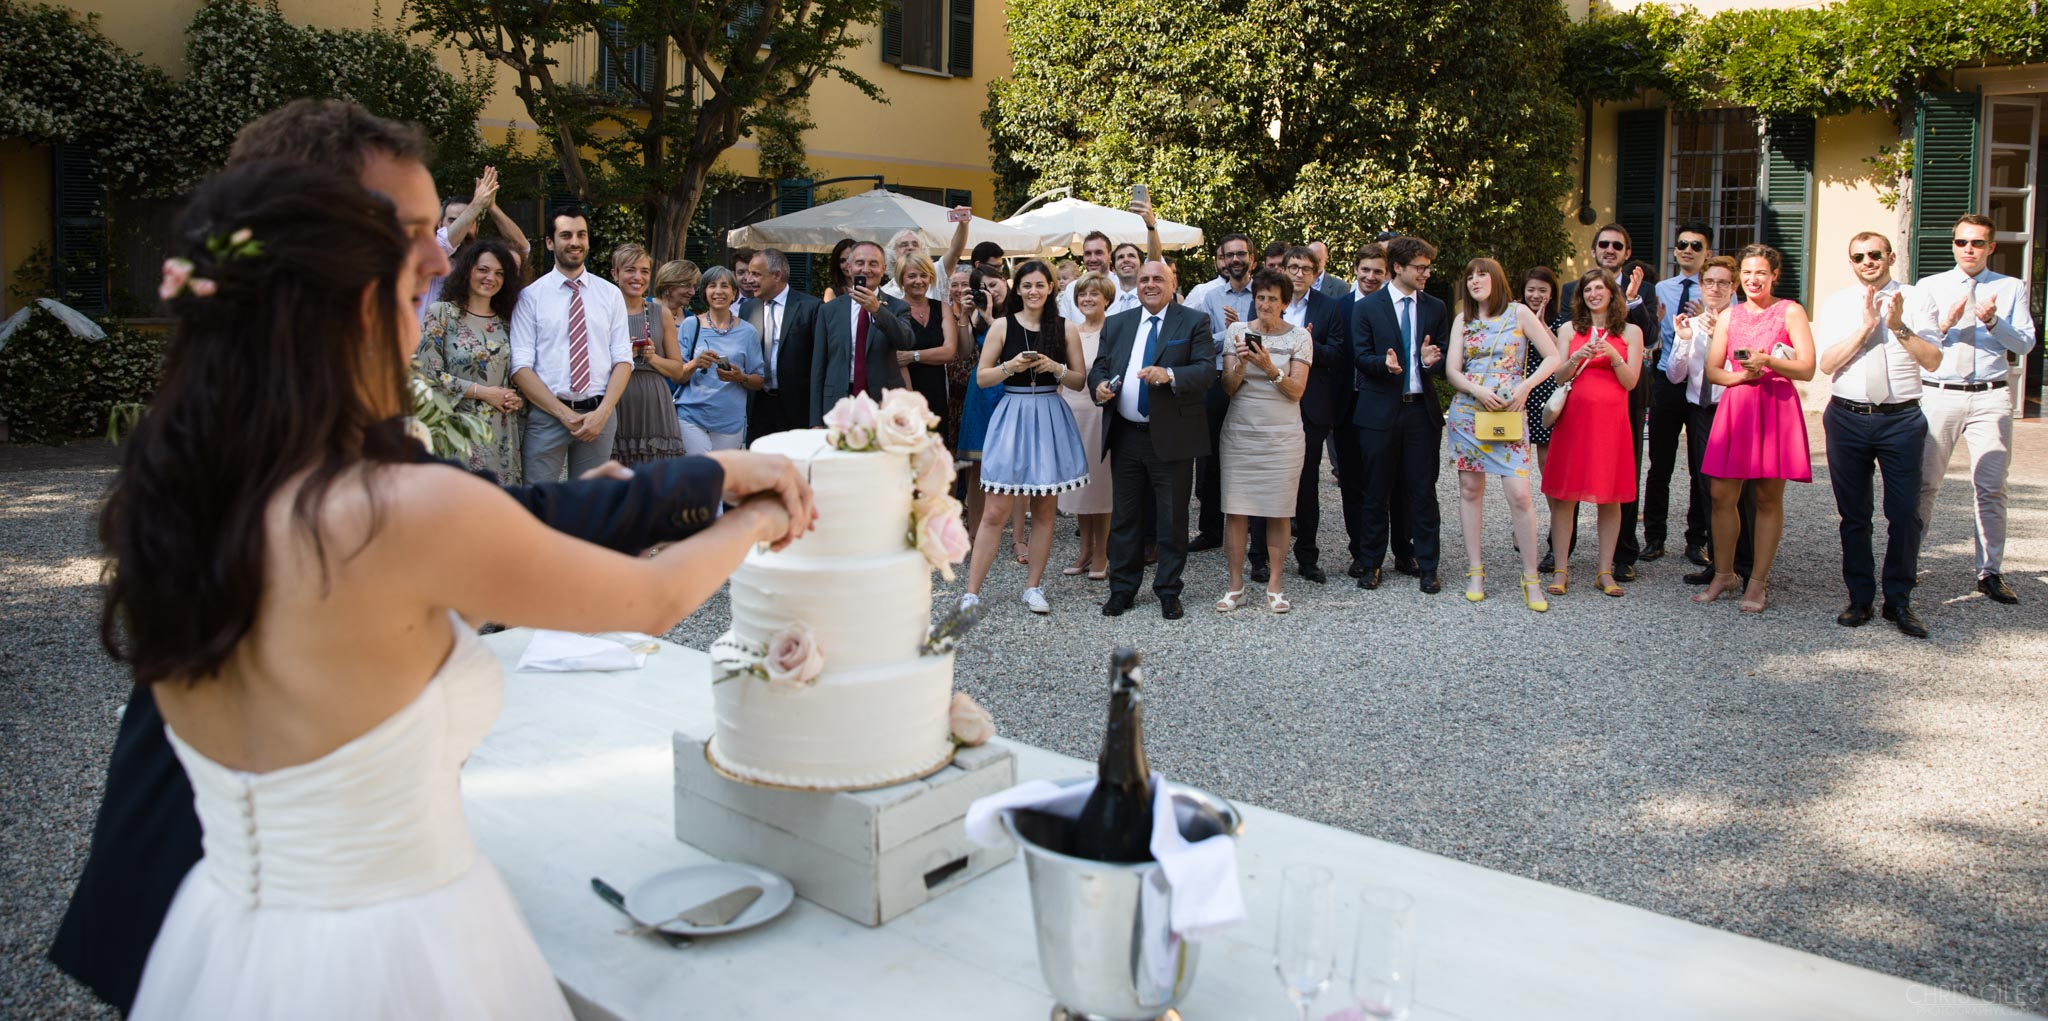 Guests watching the cake cutting in Italy